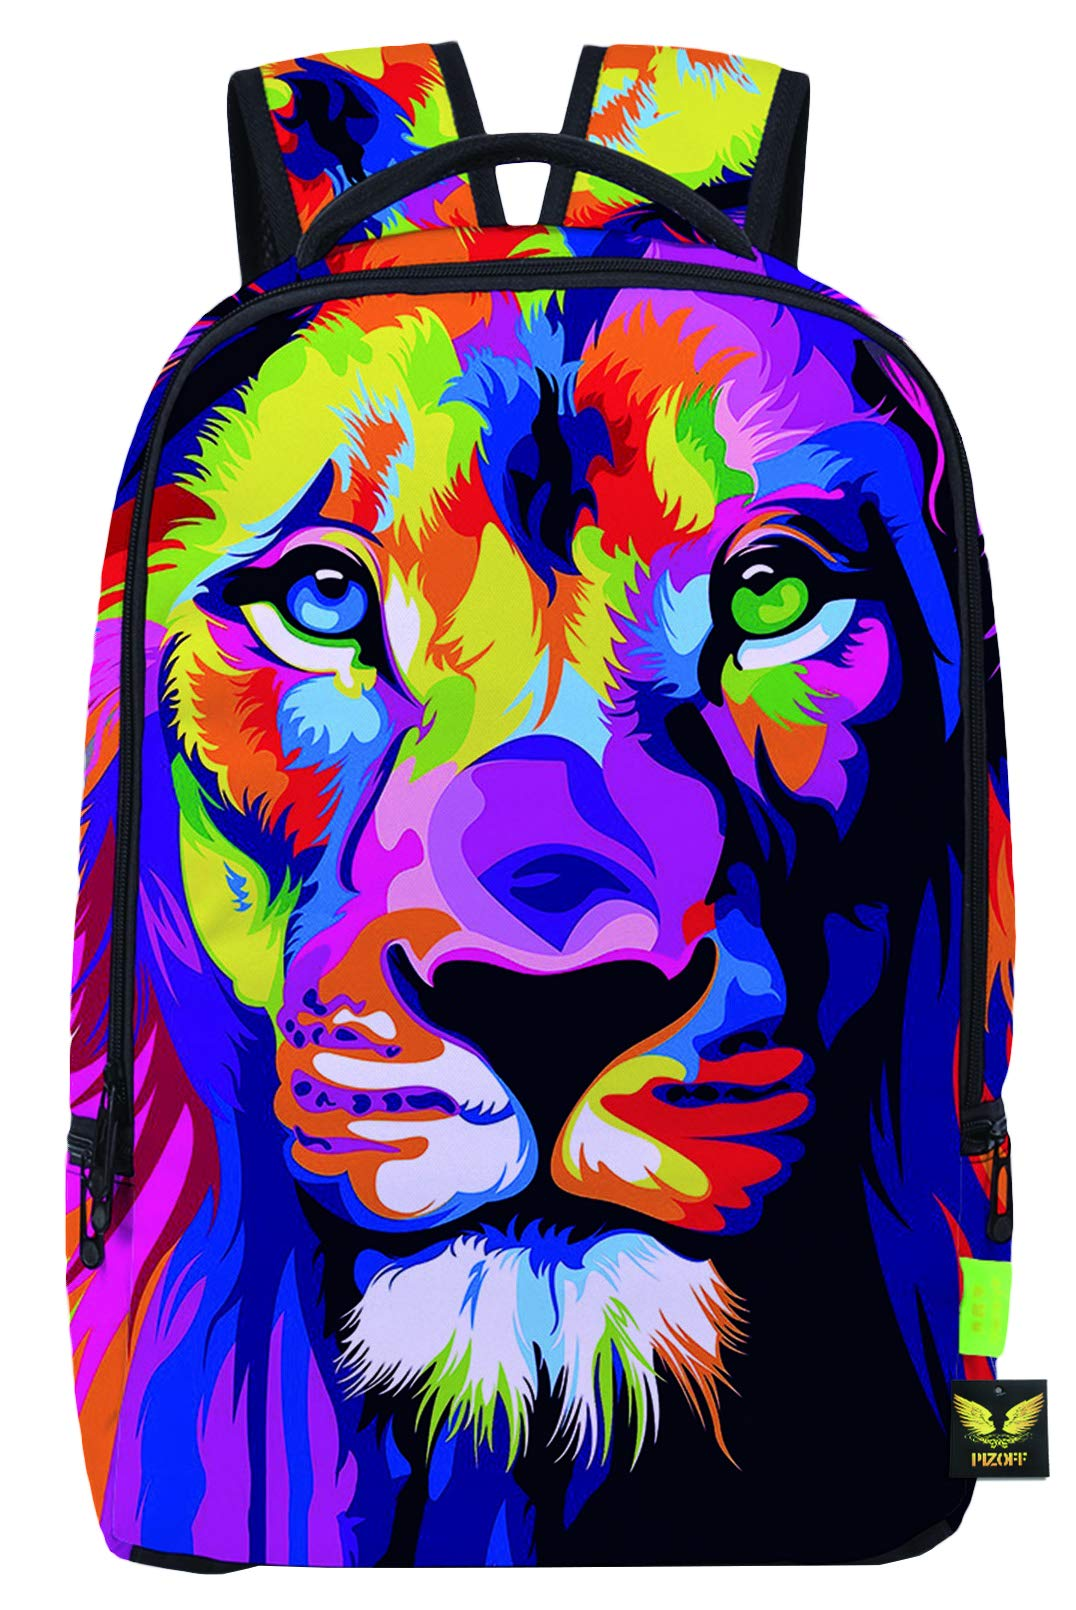 Pizoff Doulbe Mesh Padded Adjustable Shoulder Straps Colorful Lion Print School Bookbags Rucksack Travel Laptop Backpacks Boys Girls